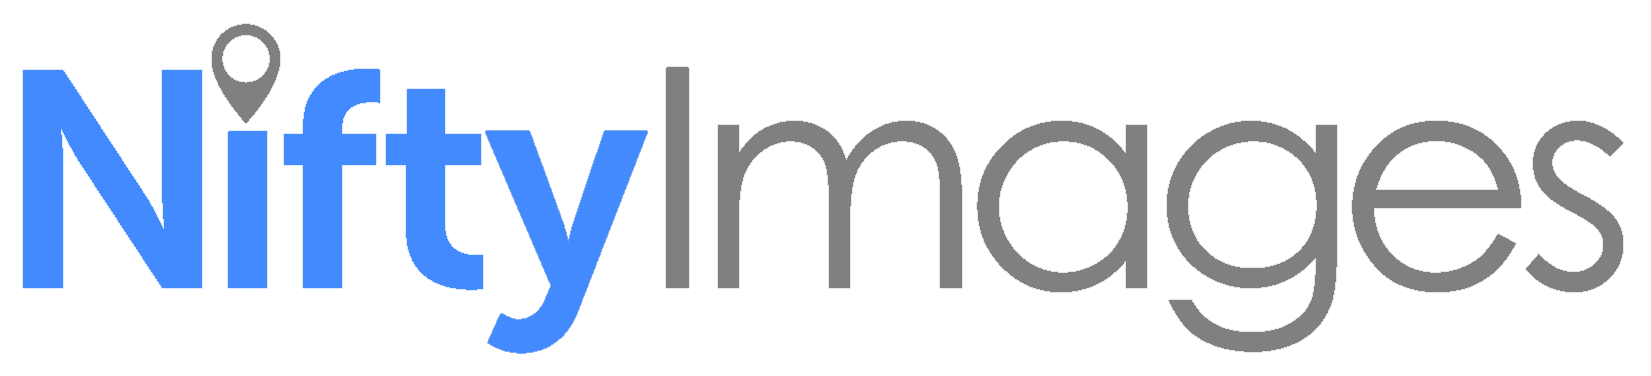 nifty-images-logo